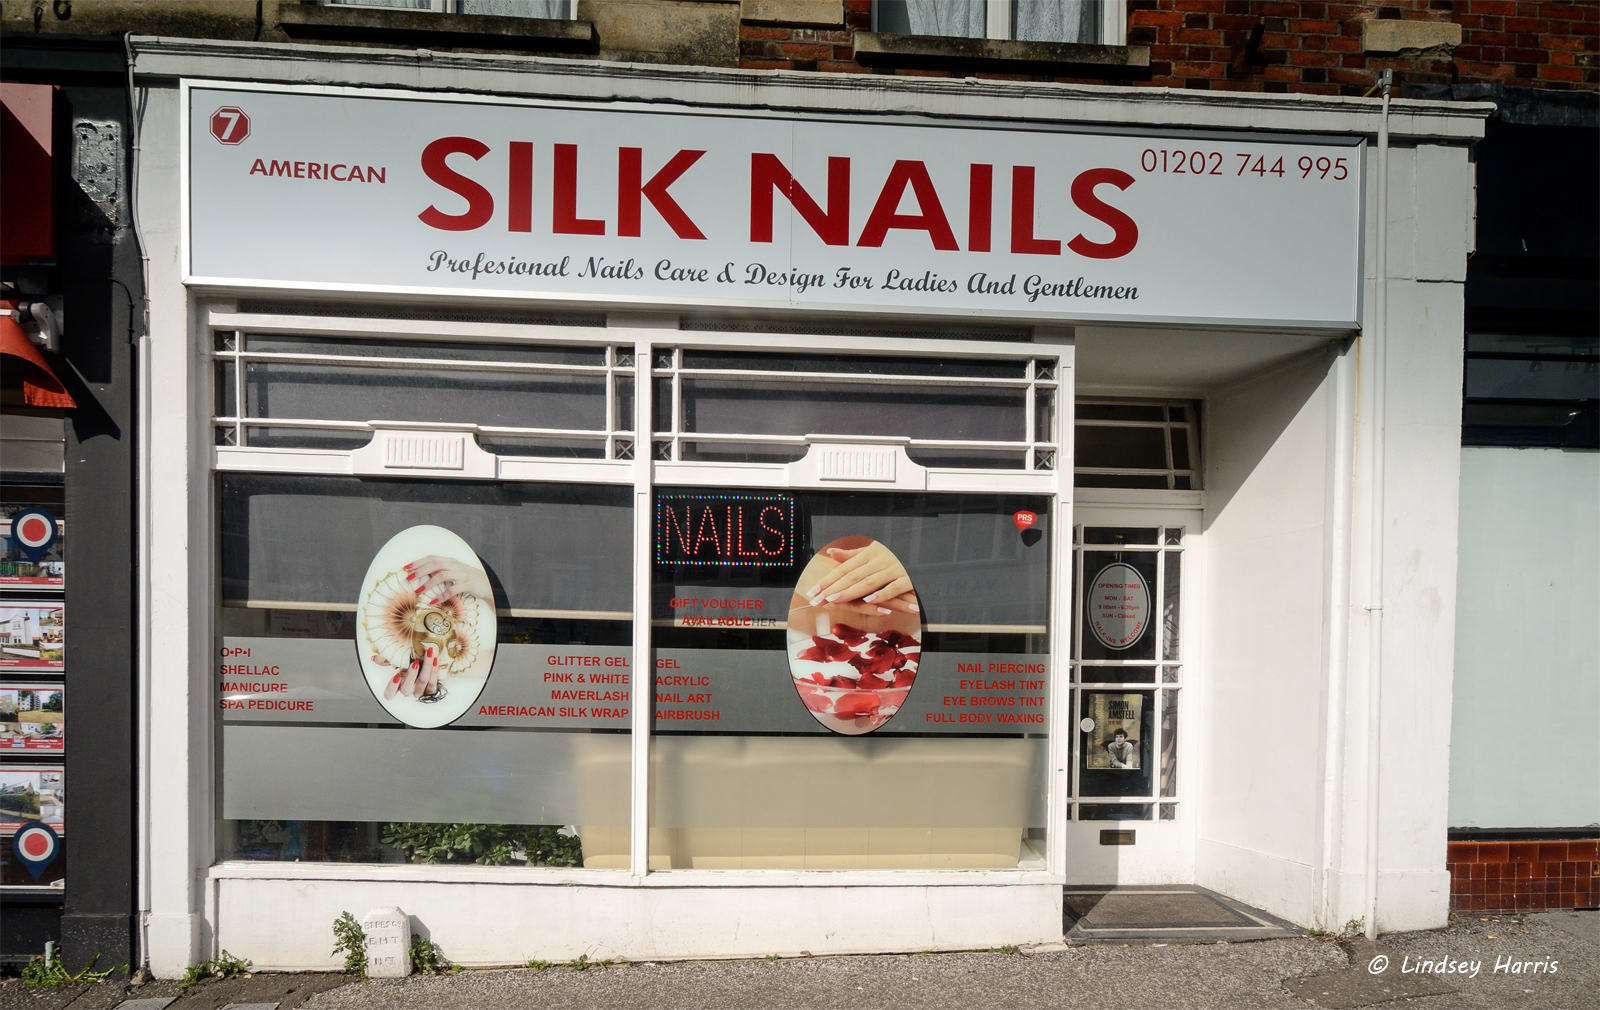 American Silk Nails, Lower Parkstone, Poole, Dorset. February 2015.